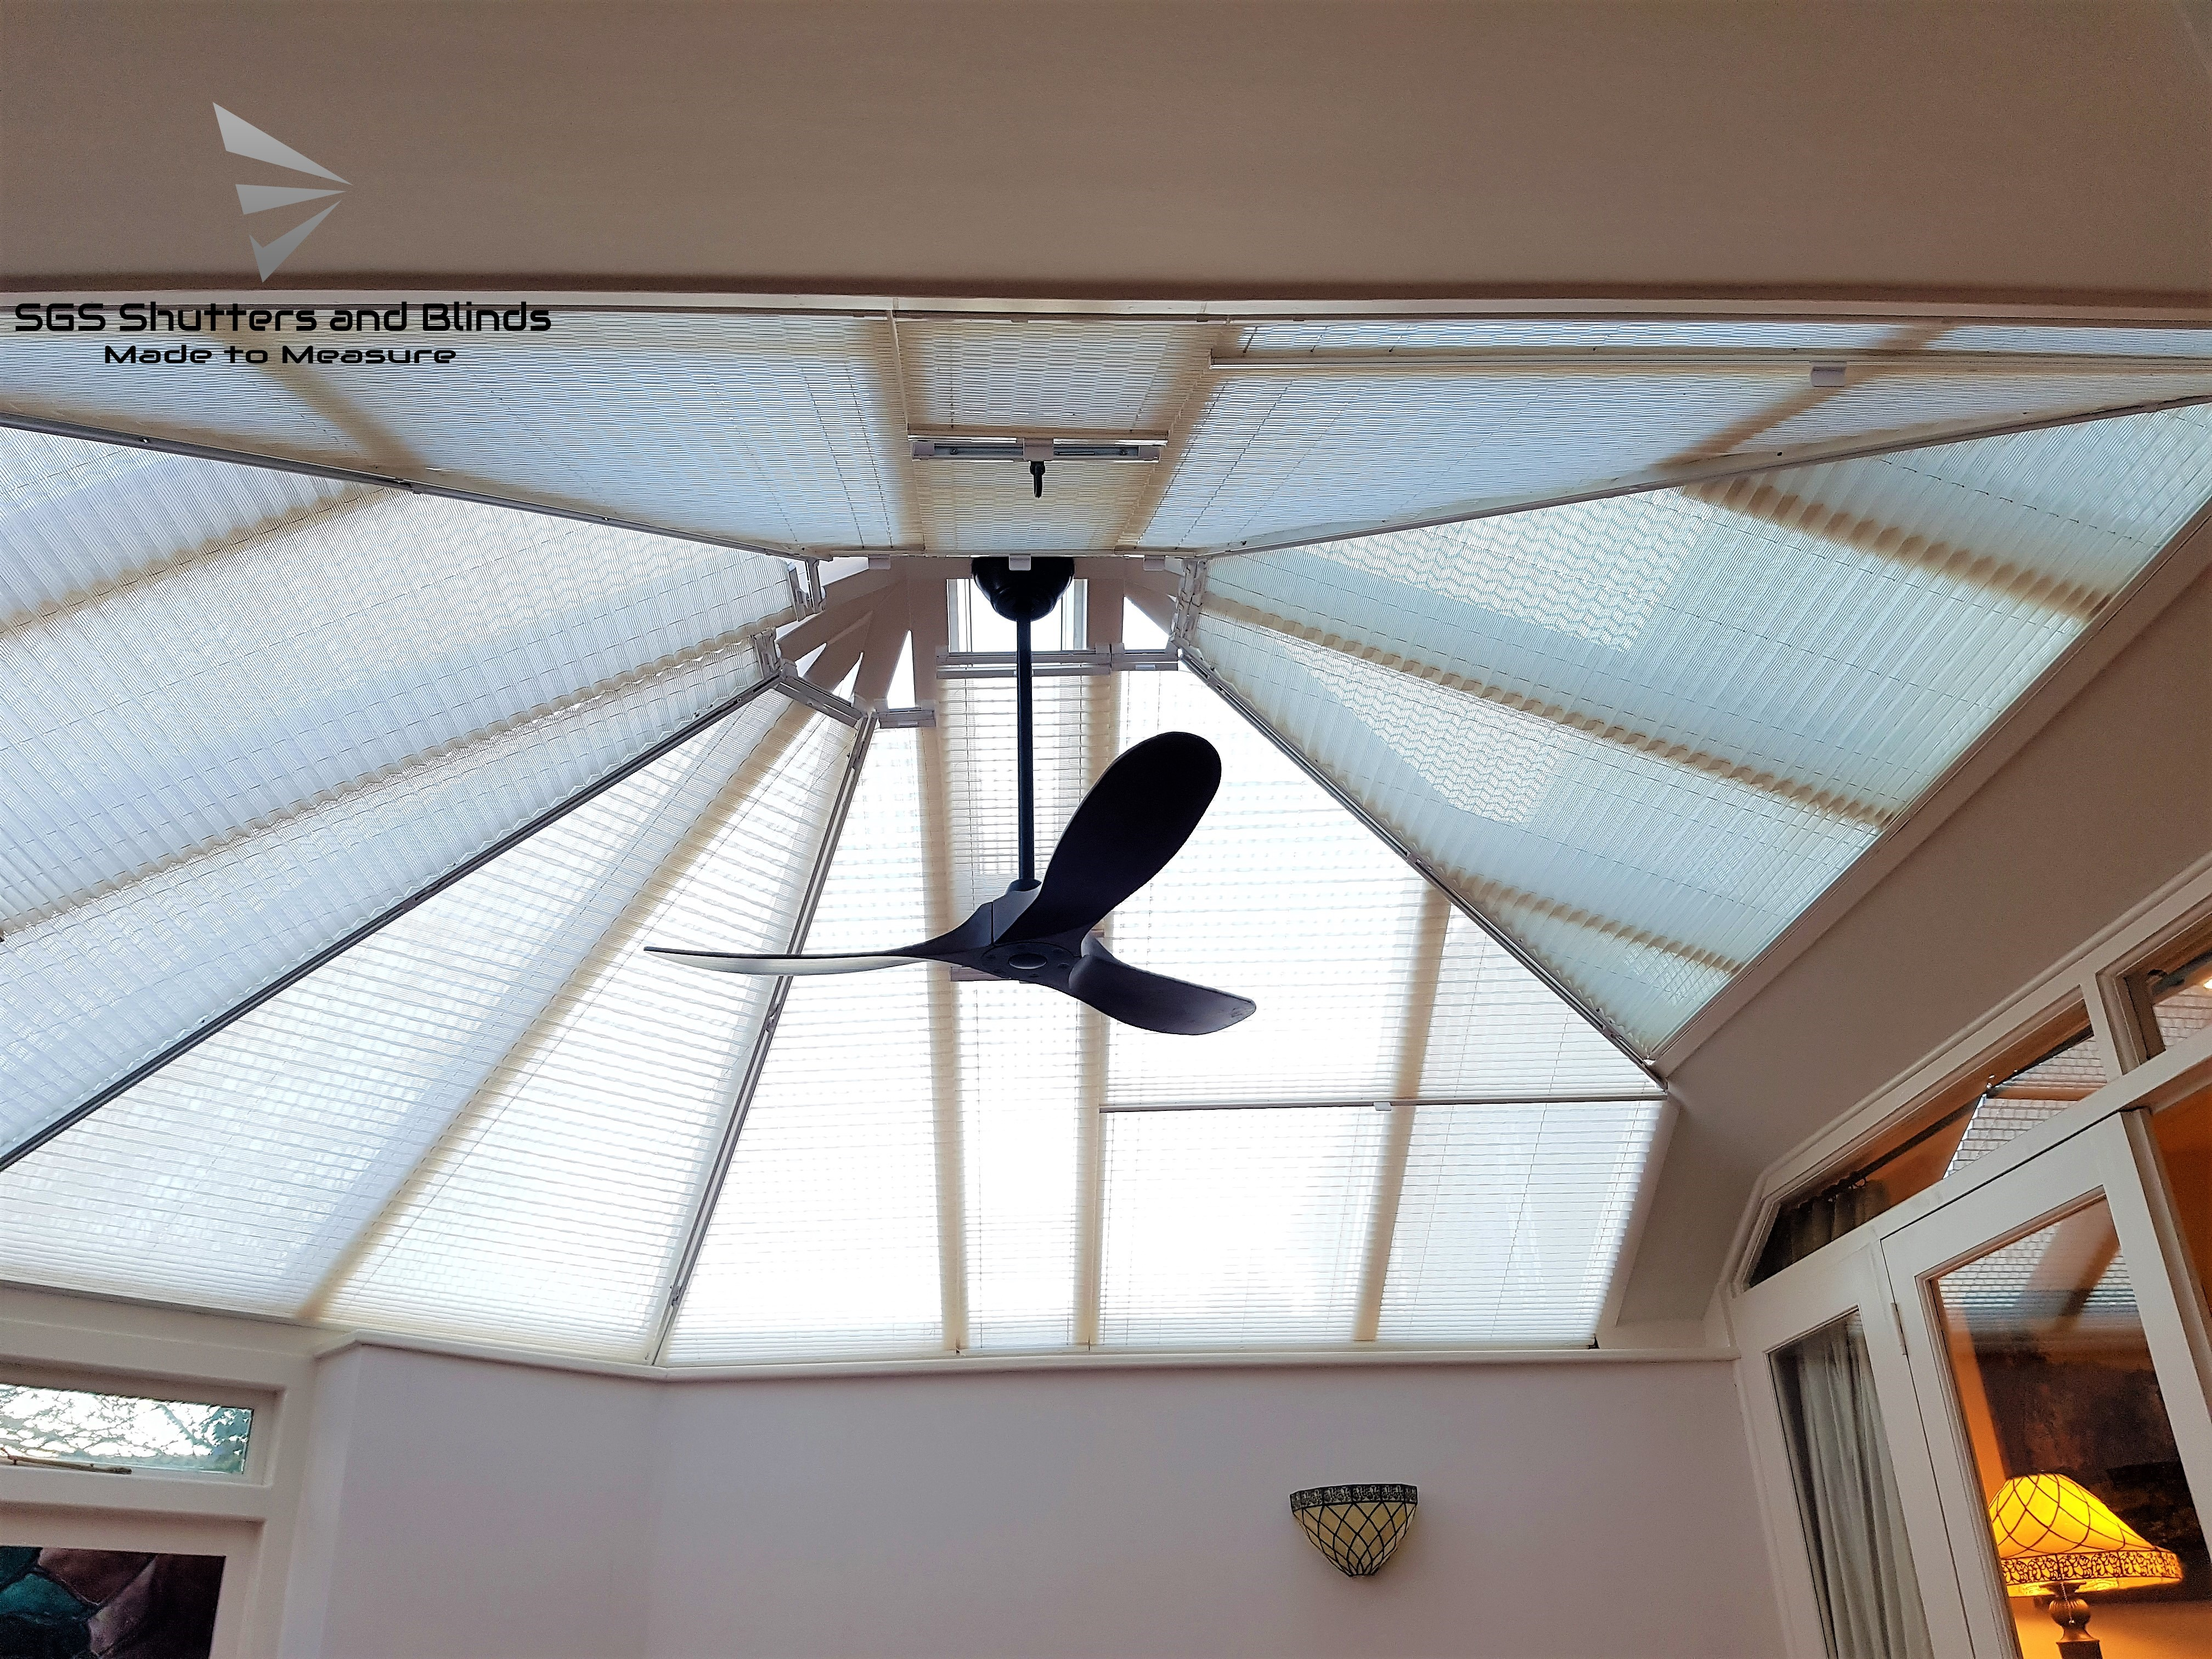 Conservatory Roof Blinds Shape Sgs Shutters And Blinds